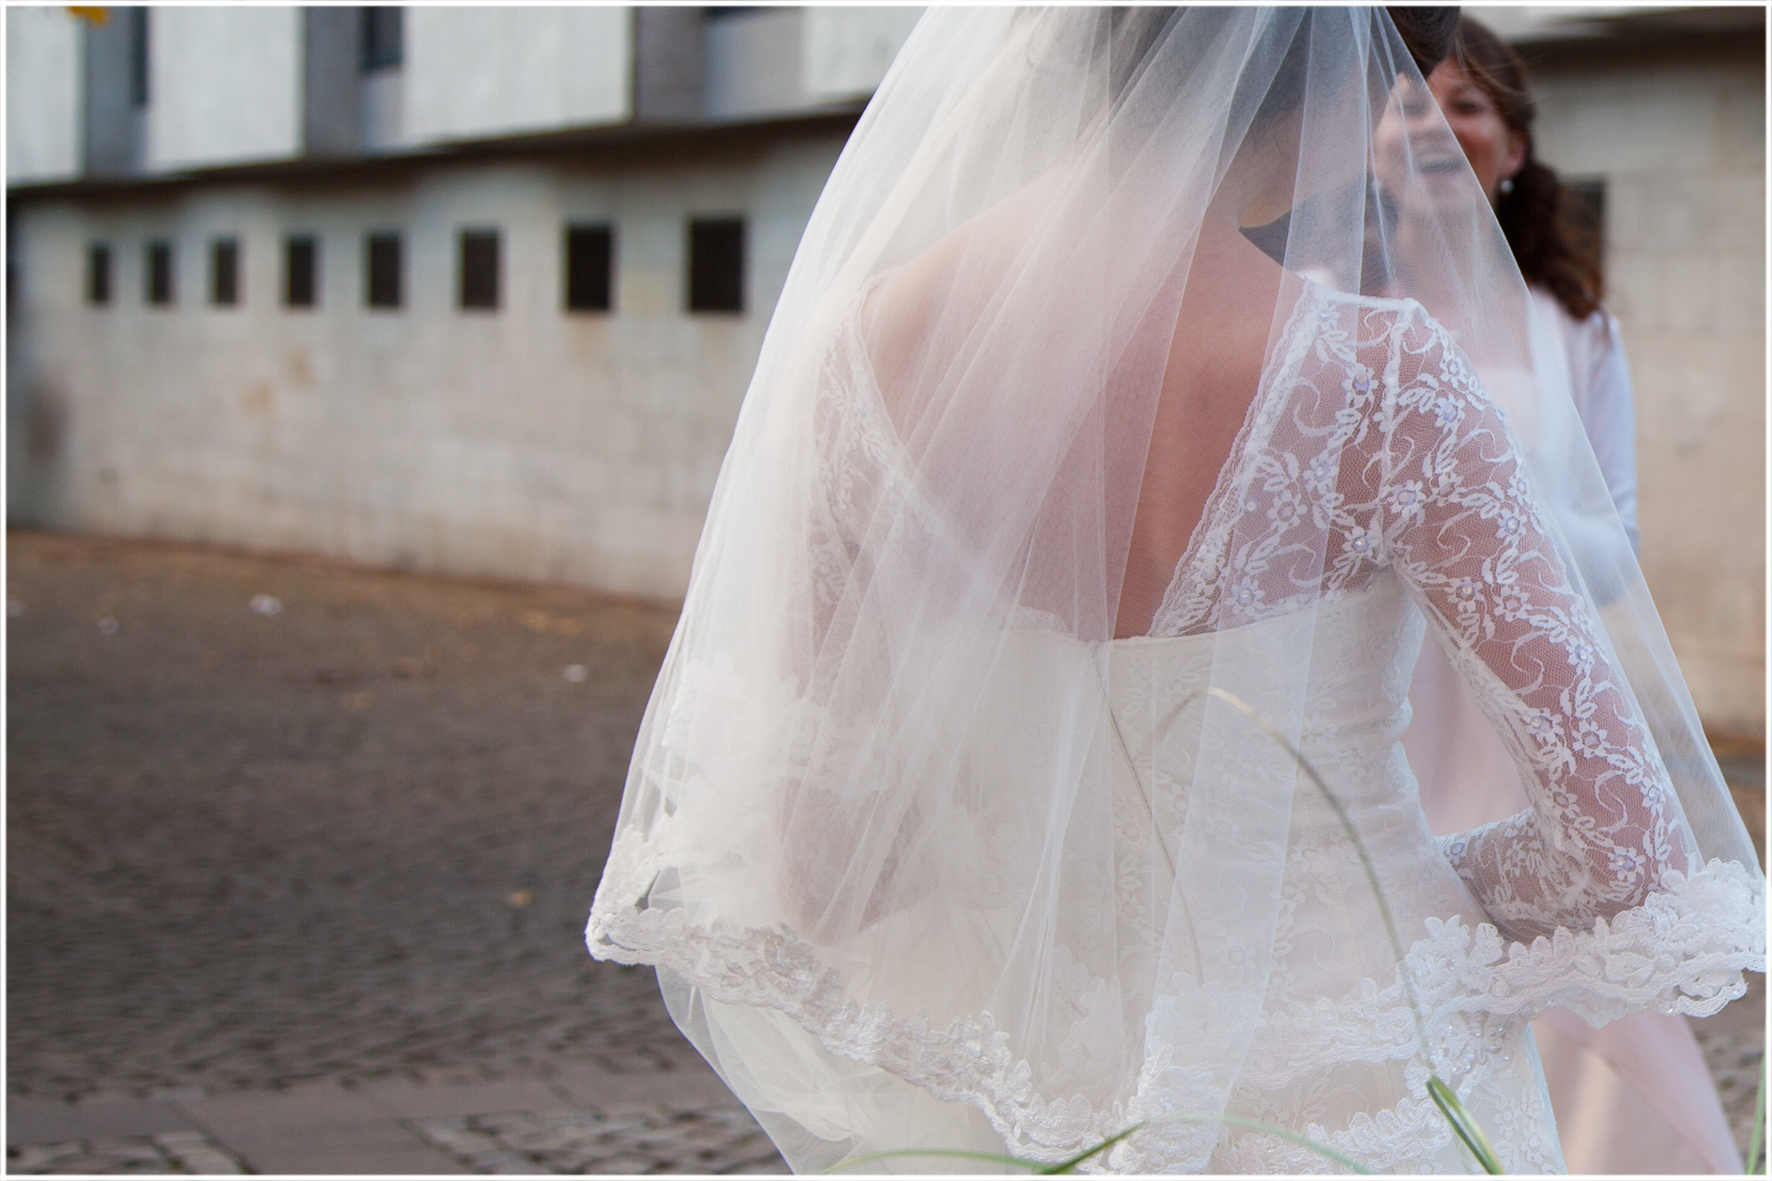 Hochzeitsfotograf Hannover | After-Wedding-Shoot (Platzhalter)